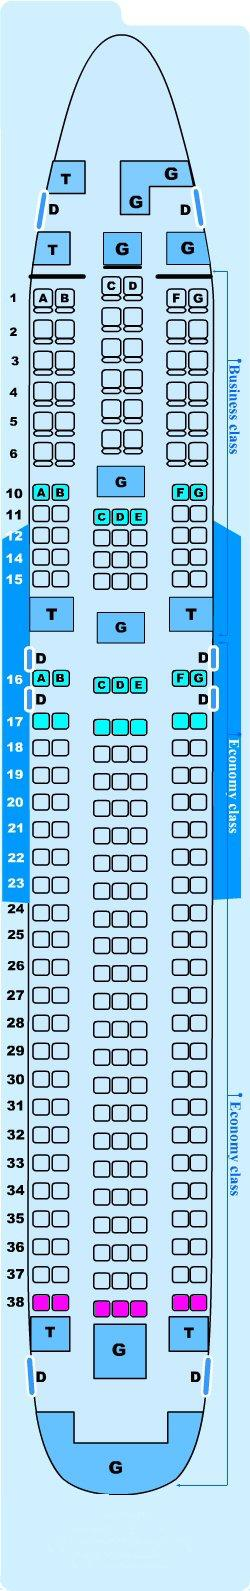 Seat map for Lauda Air Boeing B767 300 ER